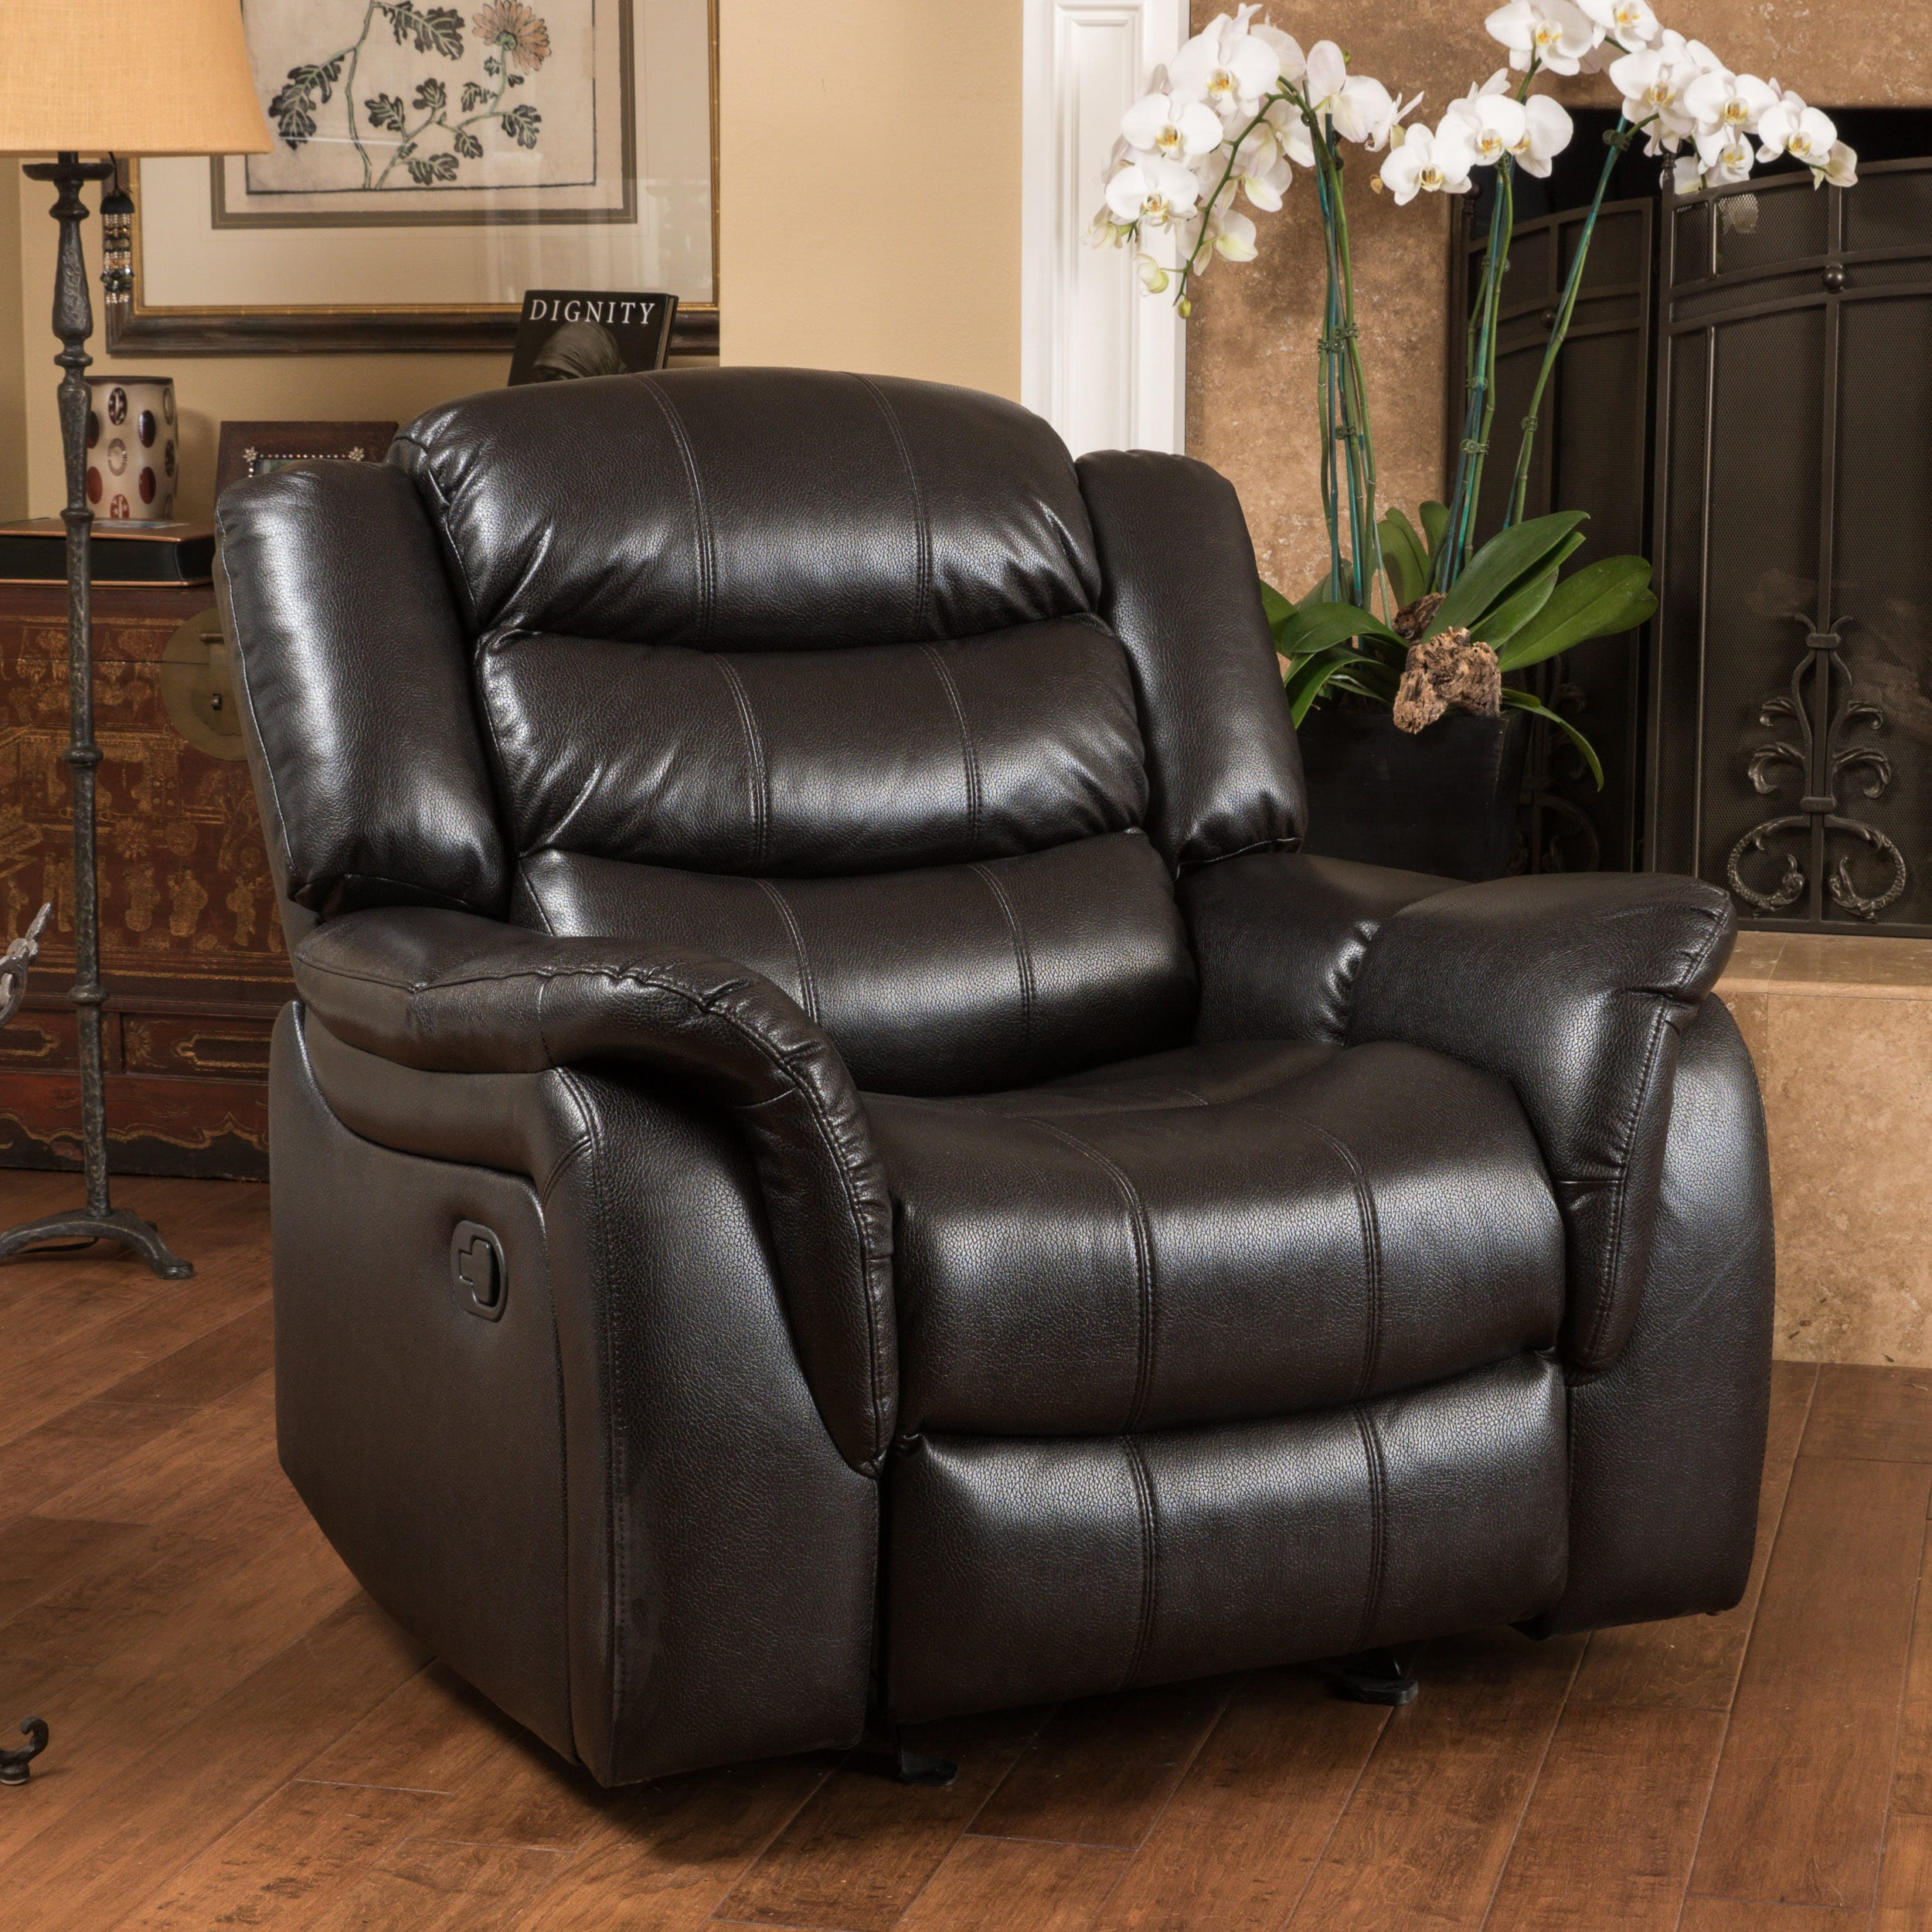 leather glider chair hawthorne pu leather glider recliner chair by christopher 16636 | Christopher Knight Home Hawthorne PU Leather Glider Recliner Club Chair 379ba187 65f8 4320 9b82 a6c3bf04bedd